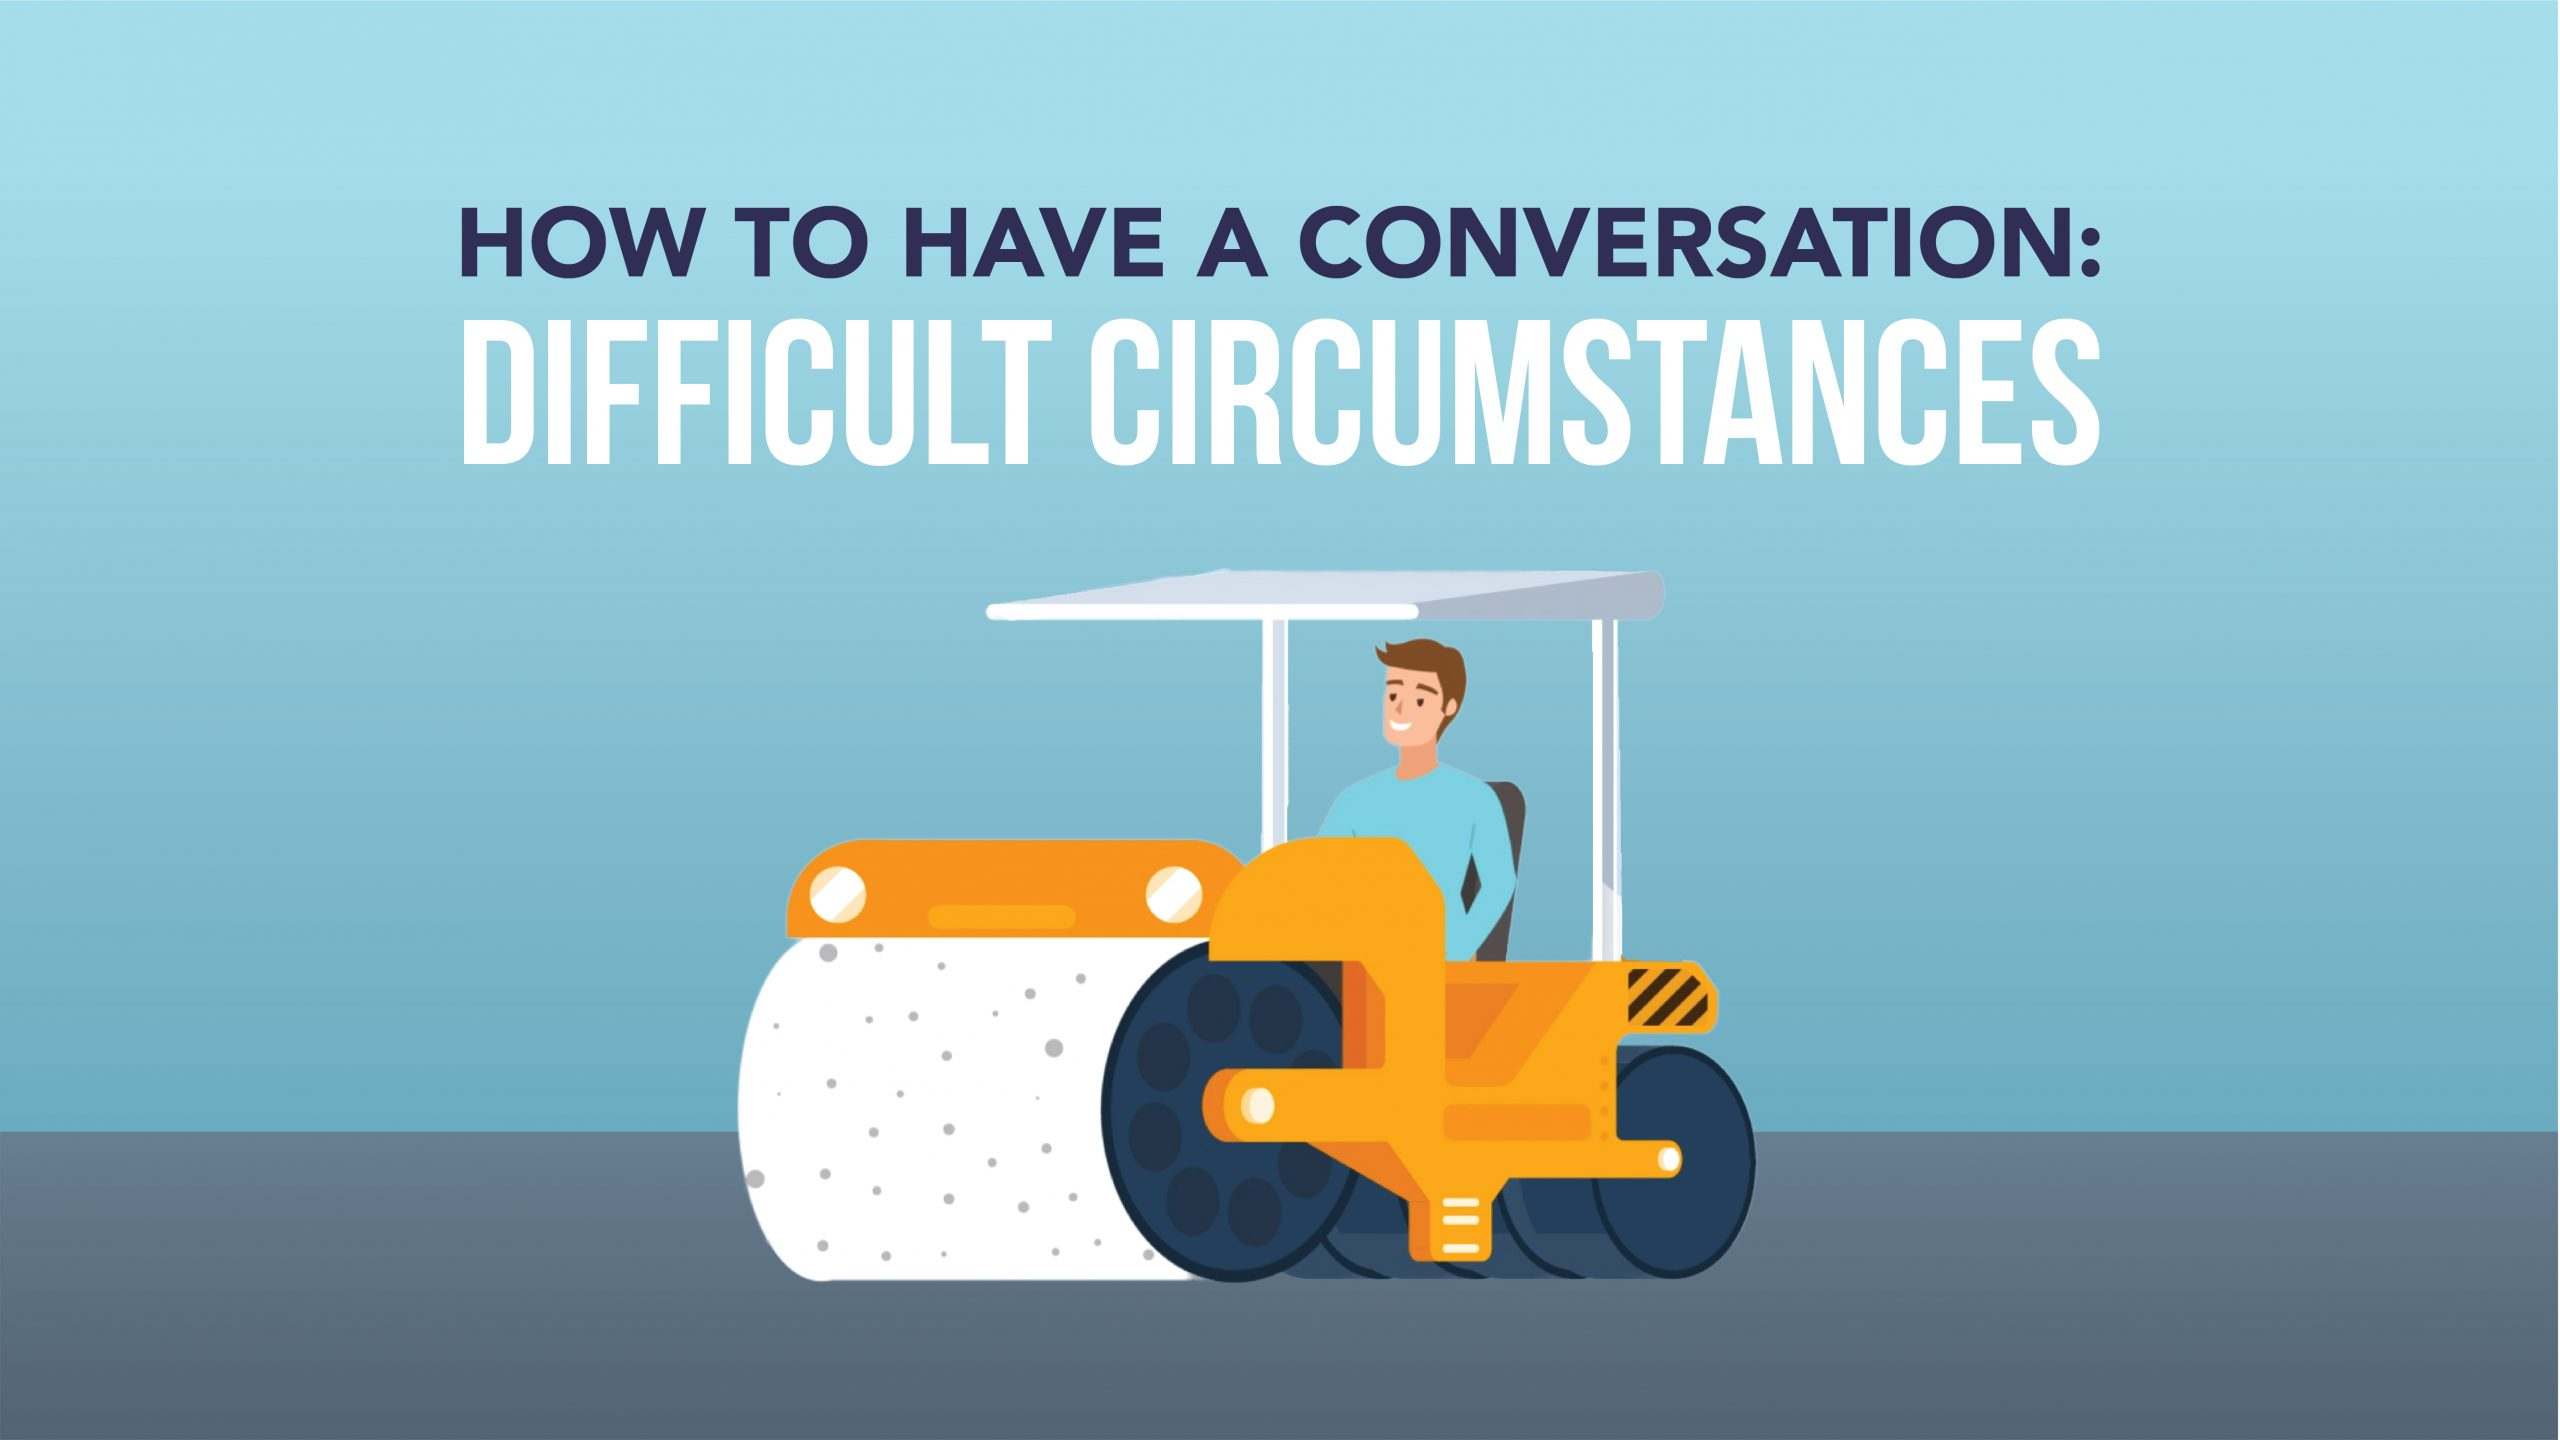 How to Have a Conversation: Difficult Circumstances